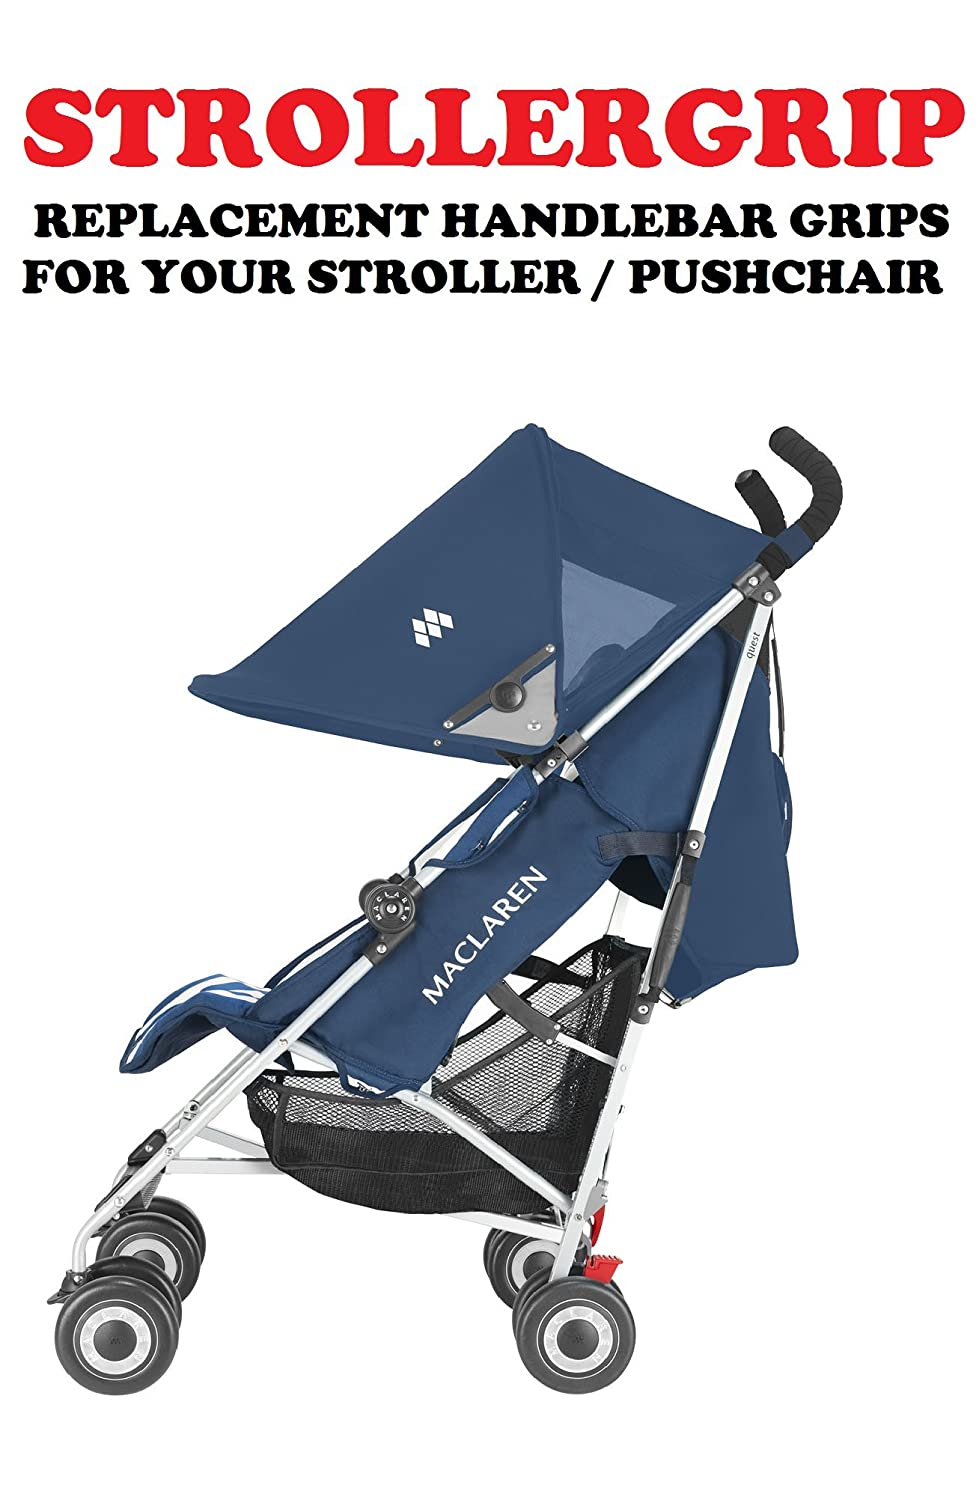 Stroller, Buggy , Pushchair, Replacement Handle, Grips SIZE-SMALL-Maclaren, chicco, Hauck, ana many more. BabyCenter G-1